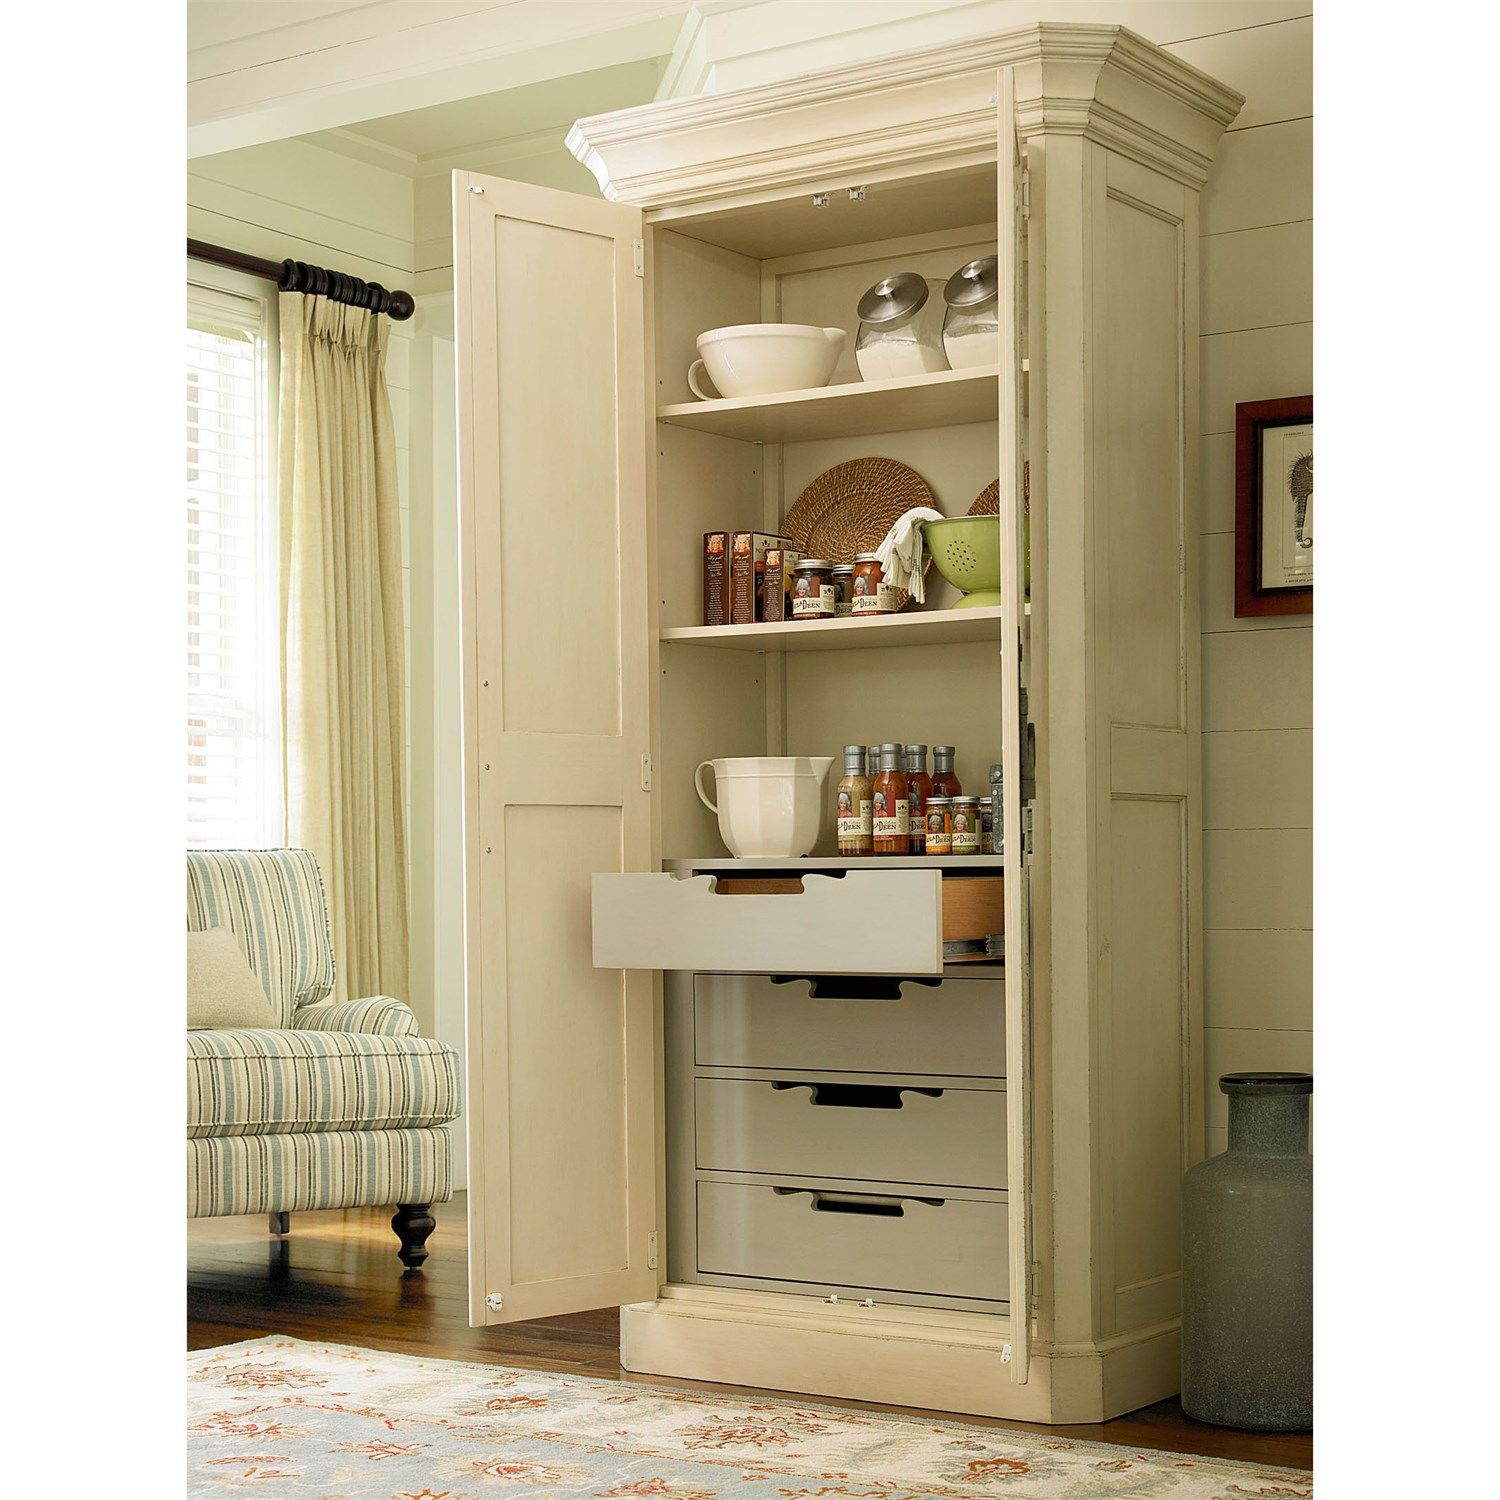 River House Kitchen Island By Paula Deen By Universal: Paula Deen Furniture 393674 River House Utility Cabinet